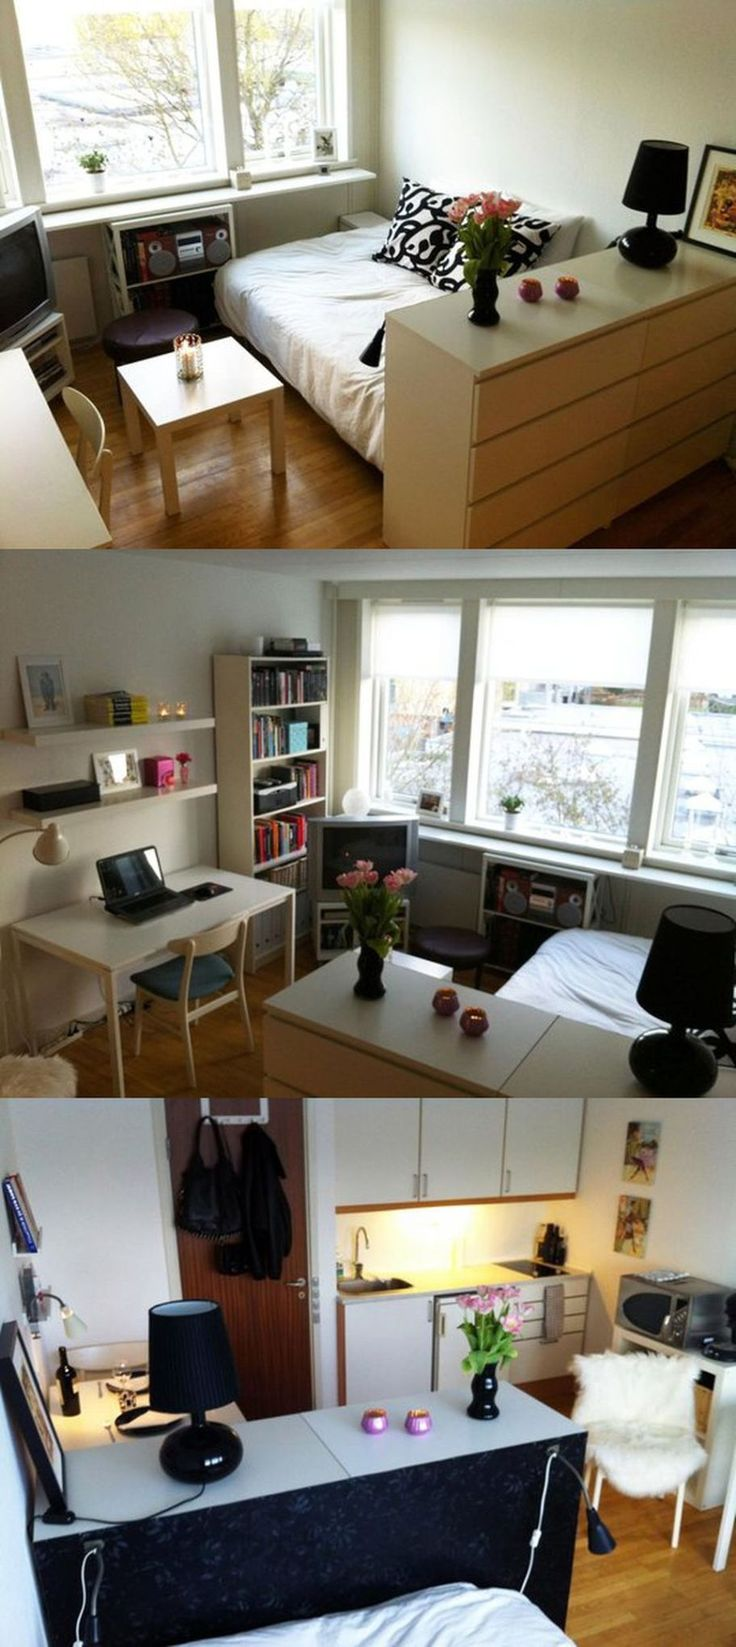 Awesome tiny studio apartment layout inspirations 54 for Distribucion apartamentos pequenos